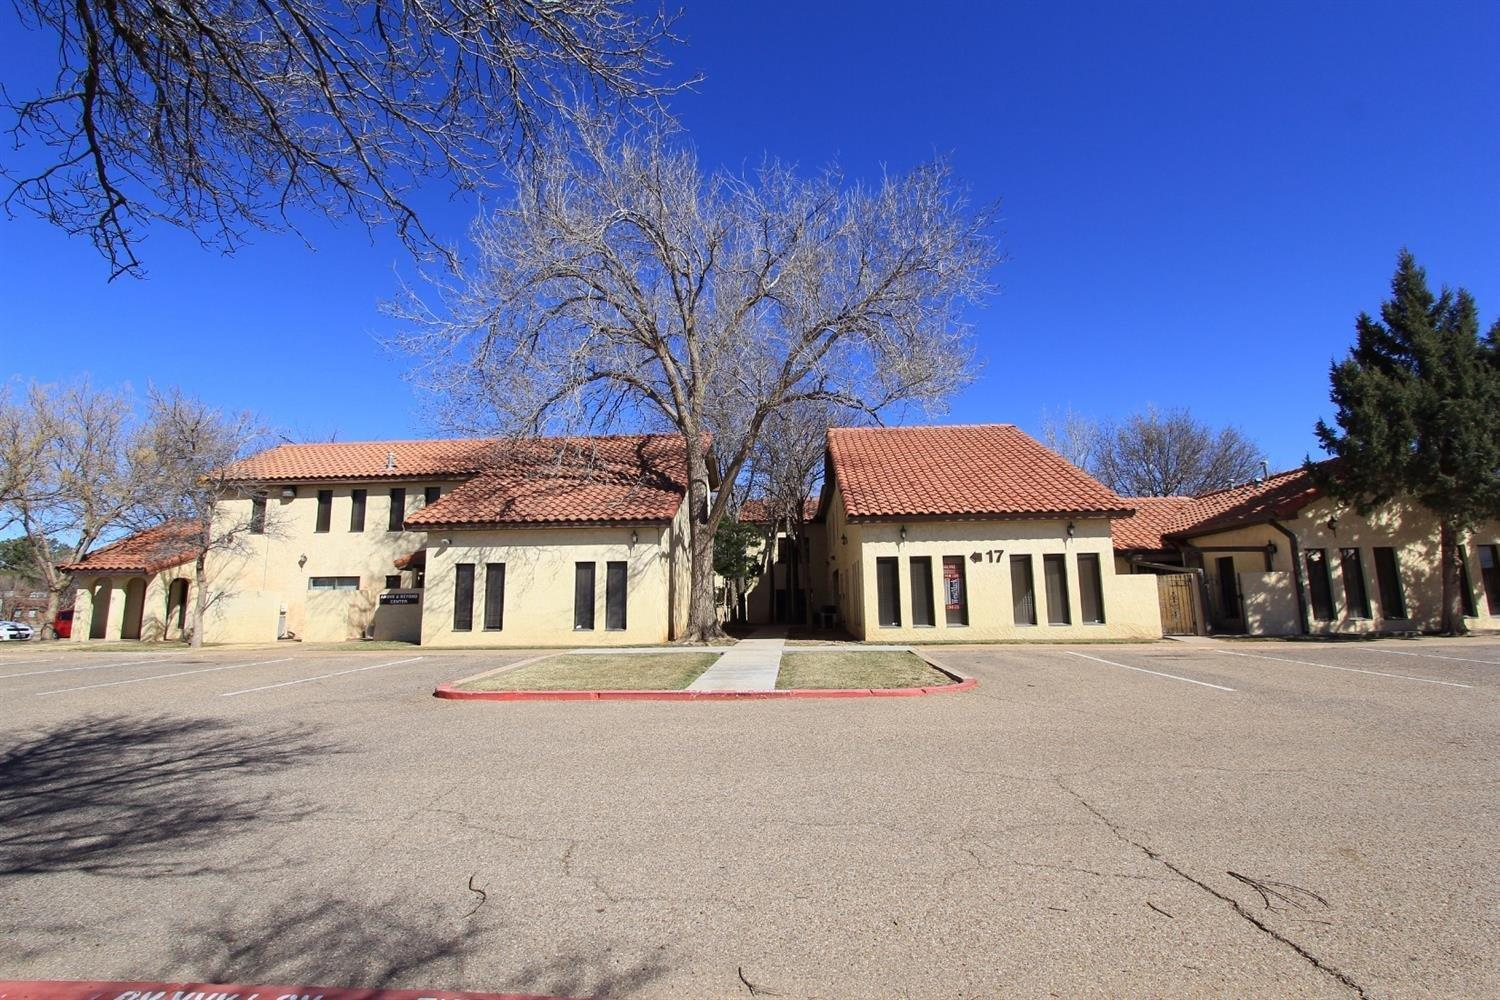 8008 Slide Road #17 is a 1,069 sf office located in Benchmark Office Park.  It is located in the heart of SW Lubbock at the corner of Slide Road and 82nd Street.  Unit #17 is a two story office space with two offices upstairs, an open concept reception area, coffee bar, 1/2 bath and one oversized office downstairs.